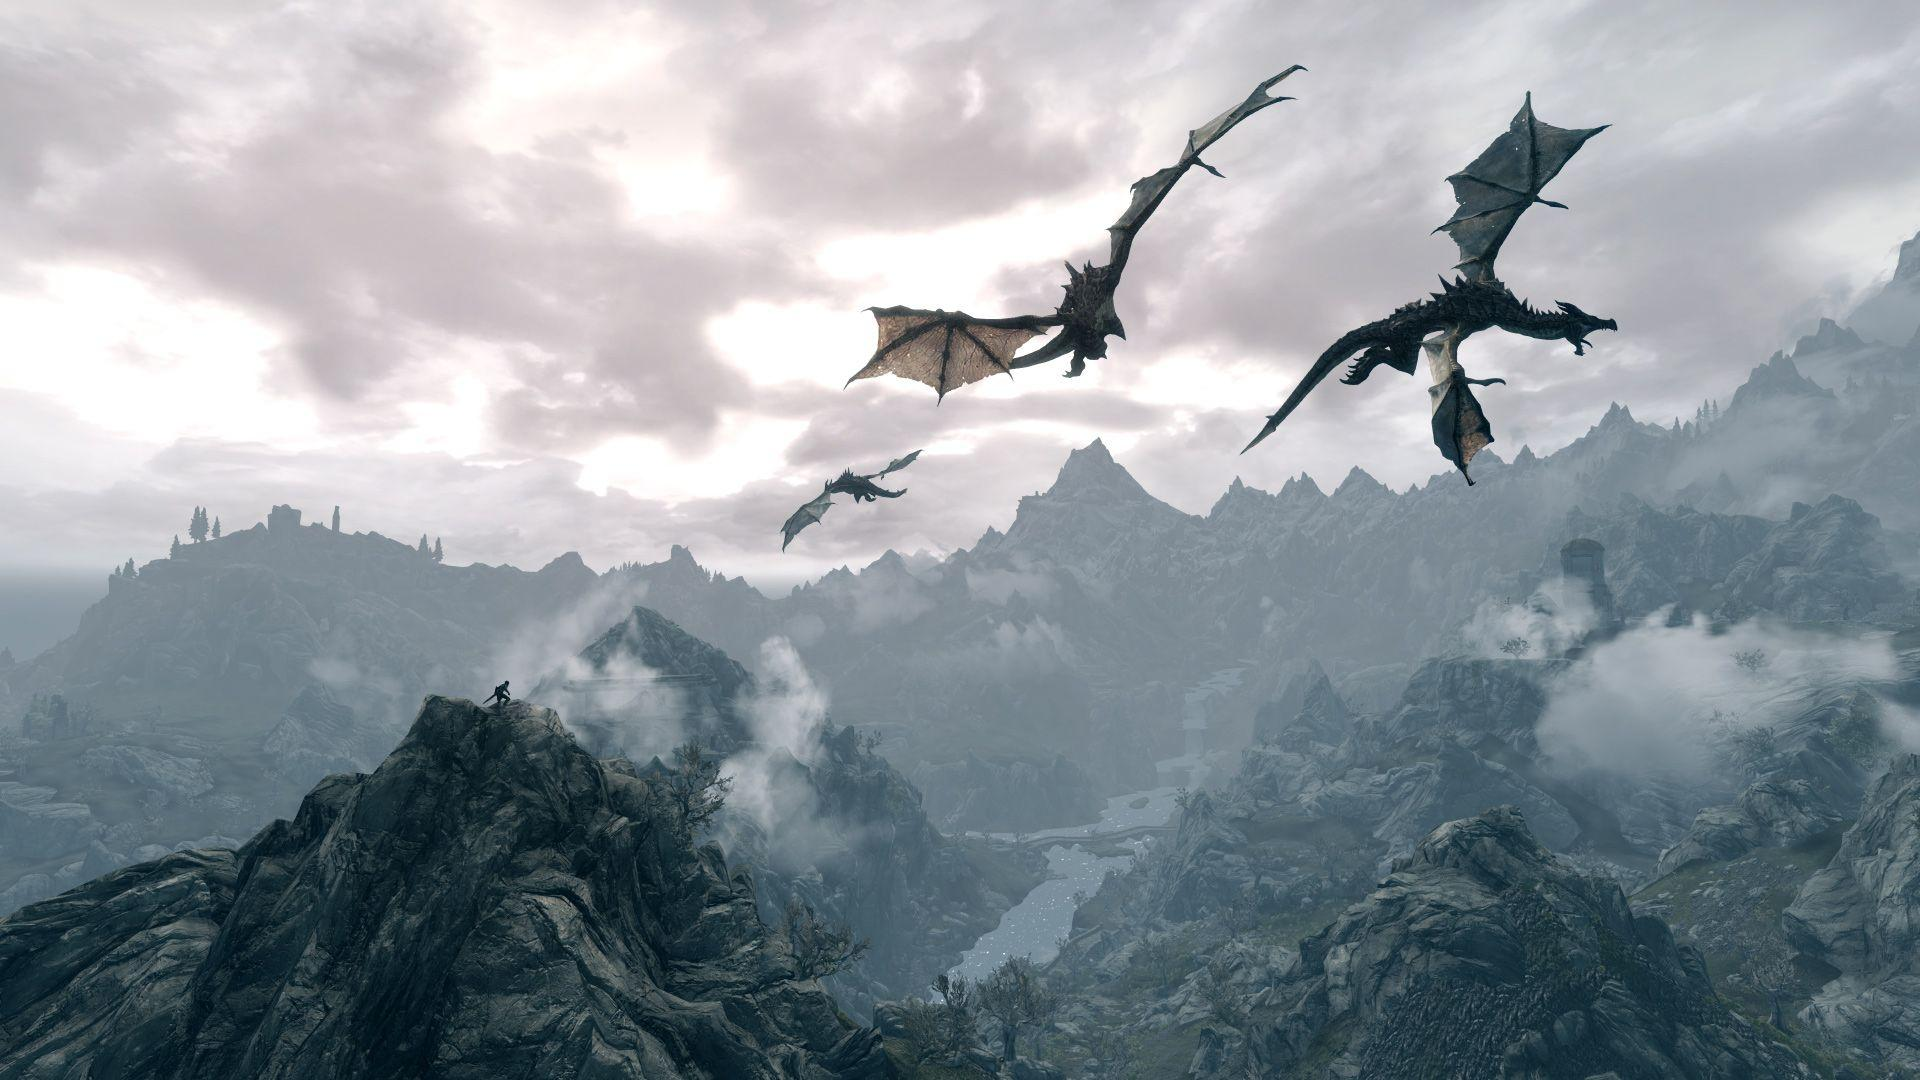 Wallpapers For > Skyrim Dragon Wallpapers Widescreen